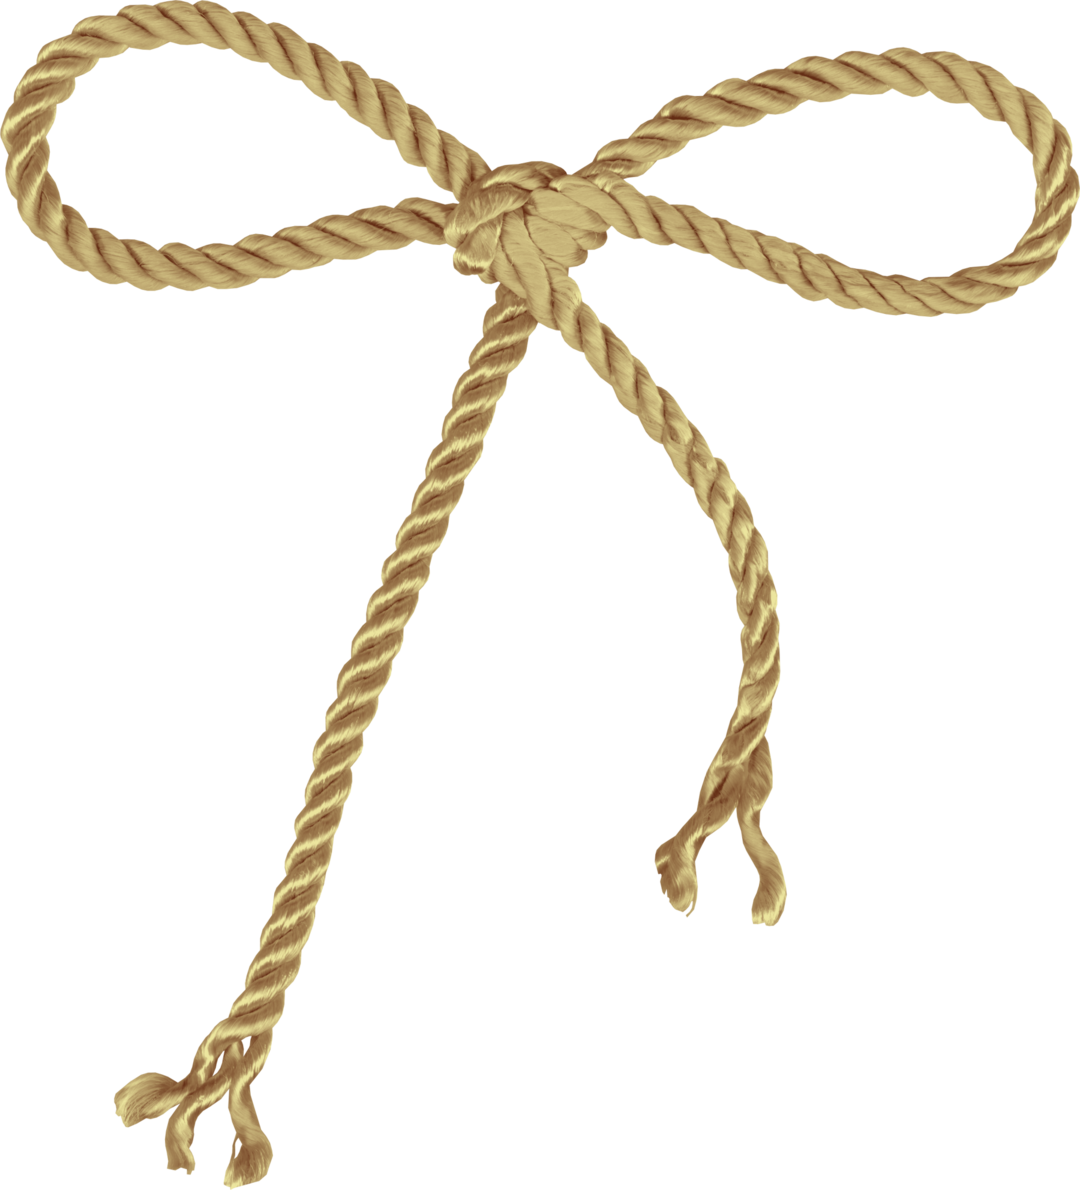 Png images free download. Knot clipart rope bow